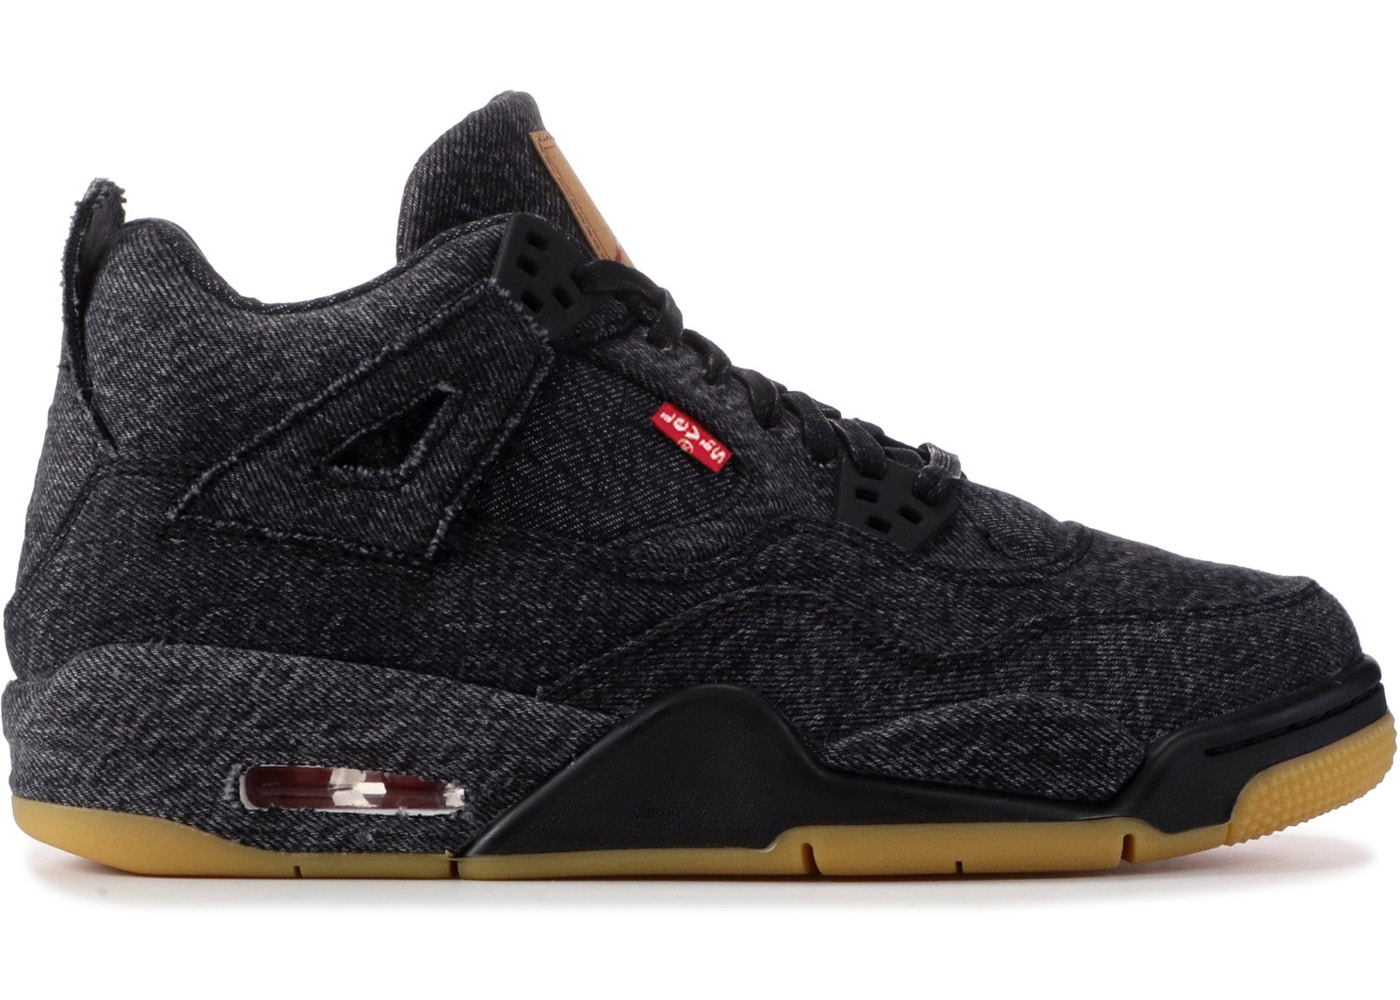 78a67cf2430 Sell. or Ask. Size  3.5Y. View All Bids. Jordan 4 Retro Levi s Black (GS)  ...